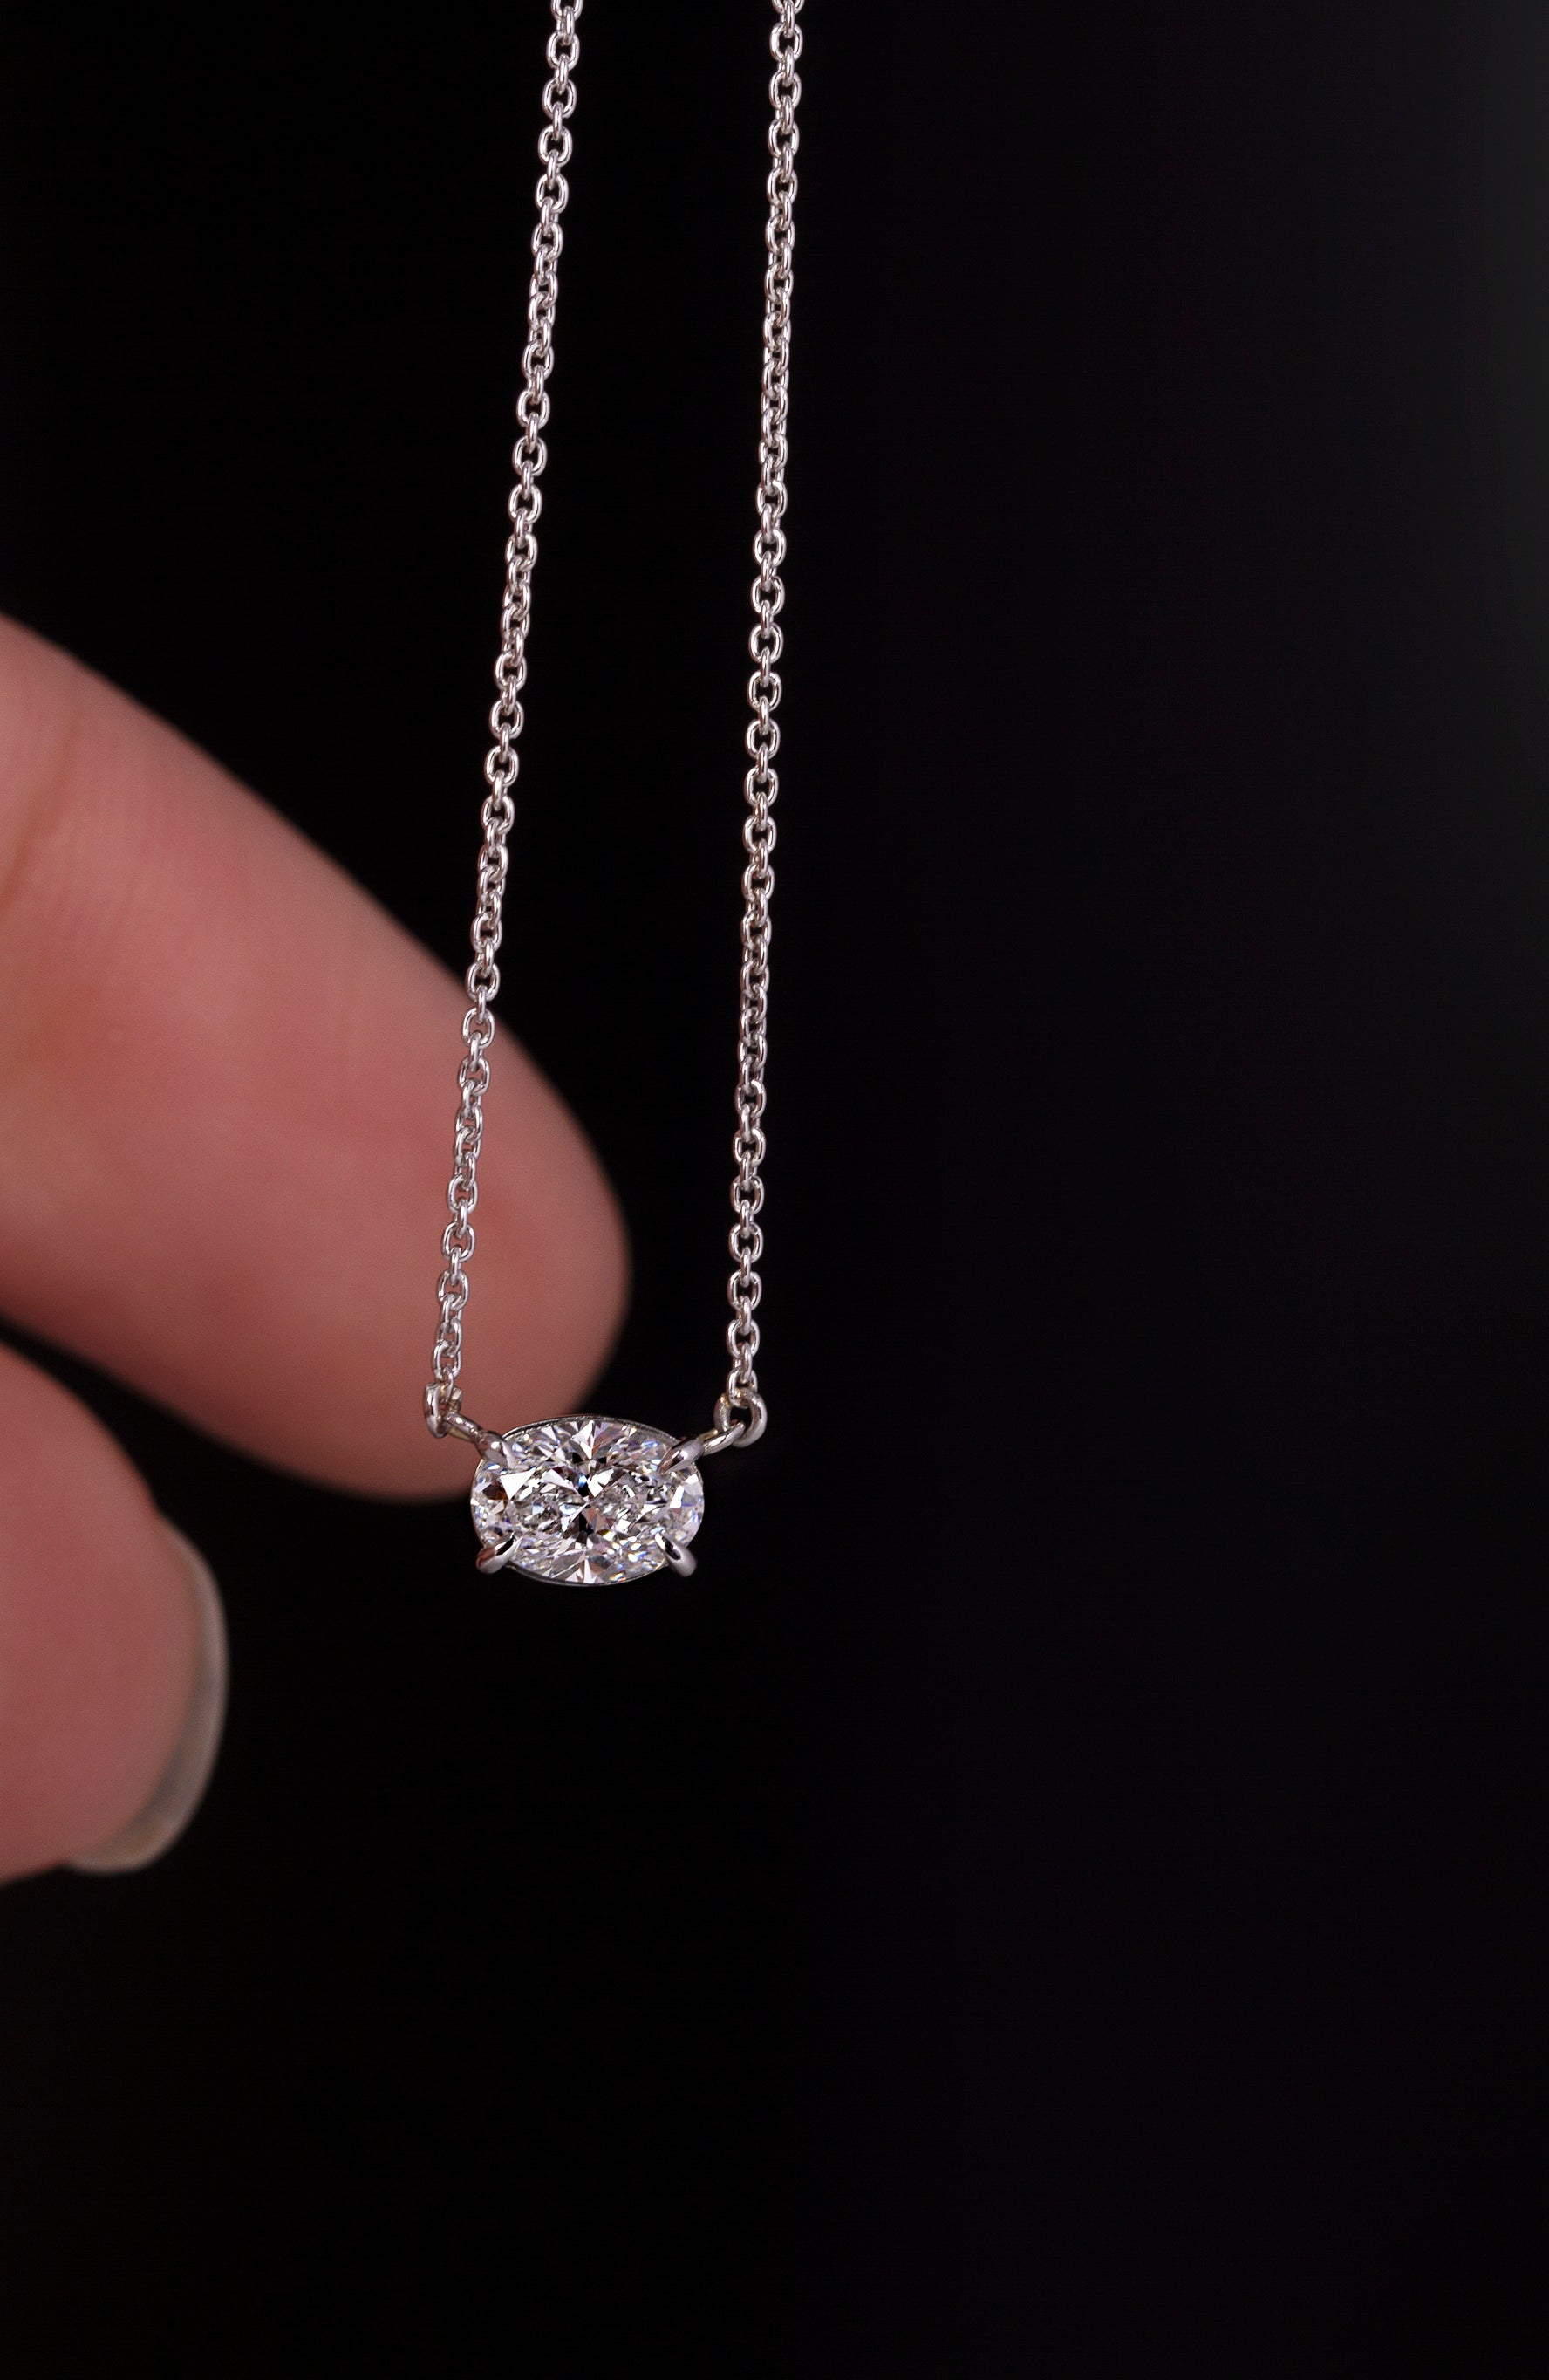 Platinum Oval Diamond pendent in an East-West setting